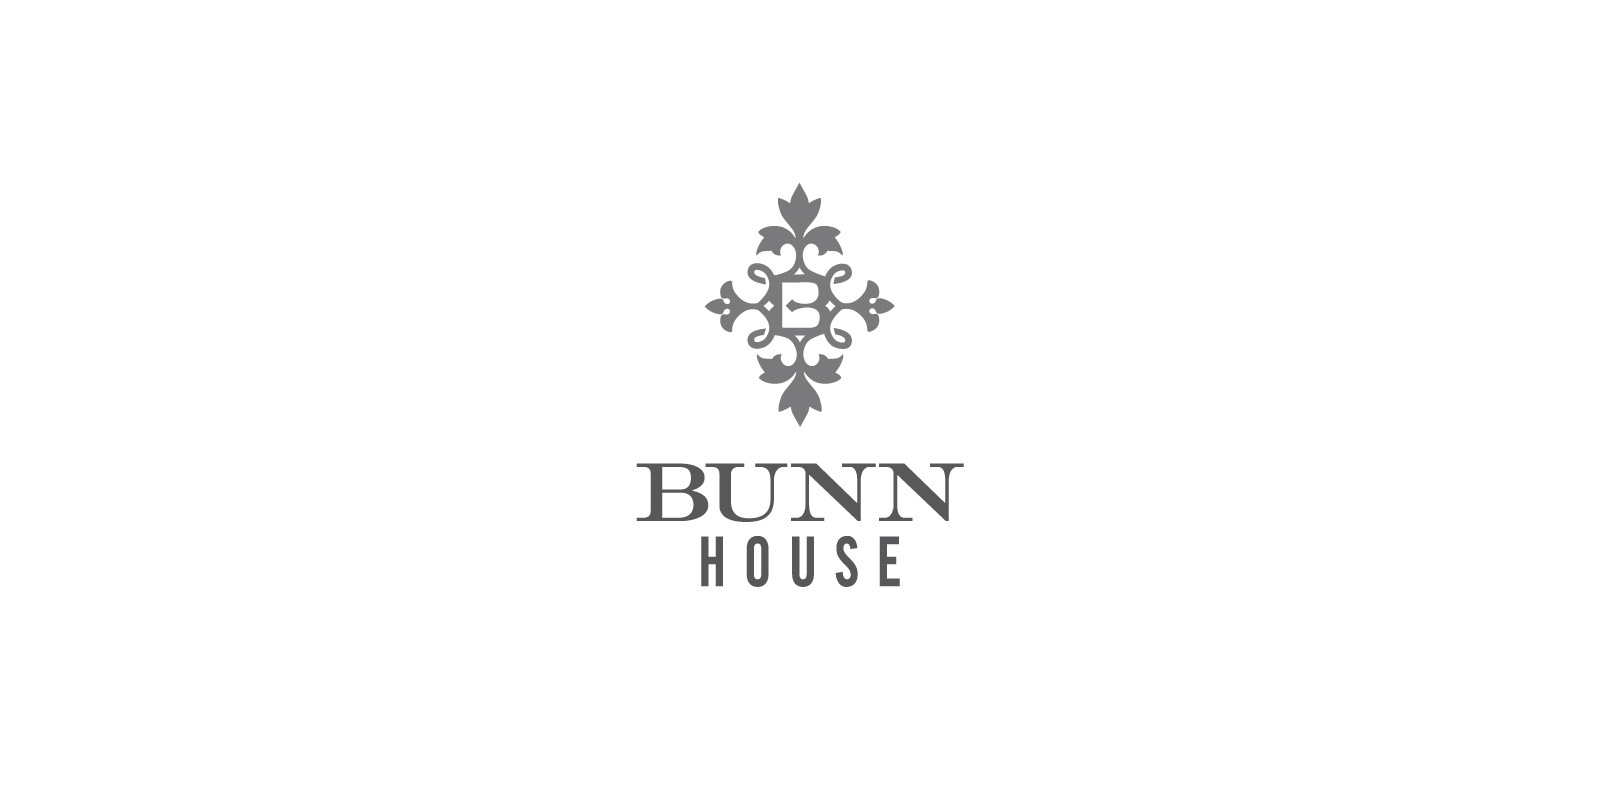 Bunn House Boutique Hotel logo in gray centered on white background